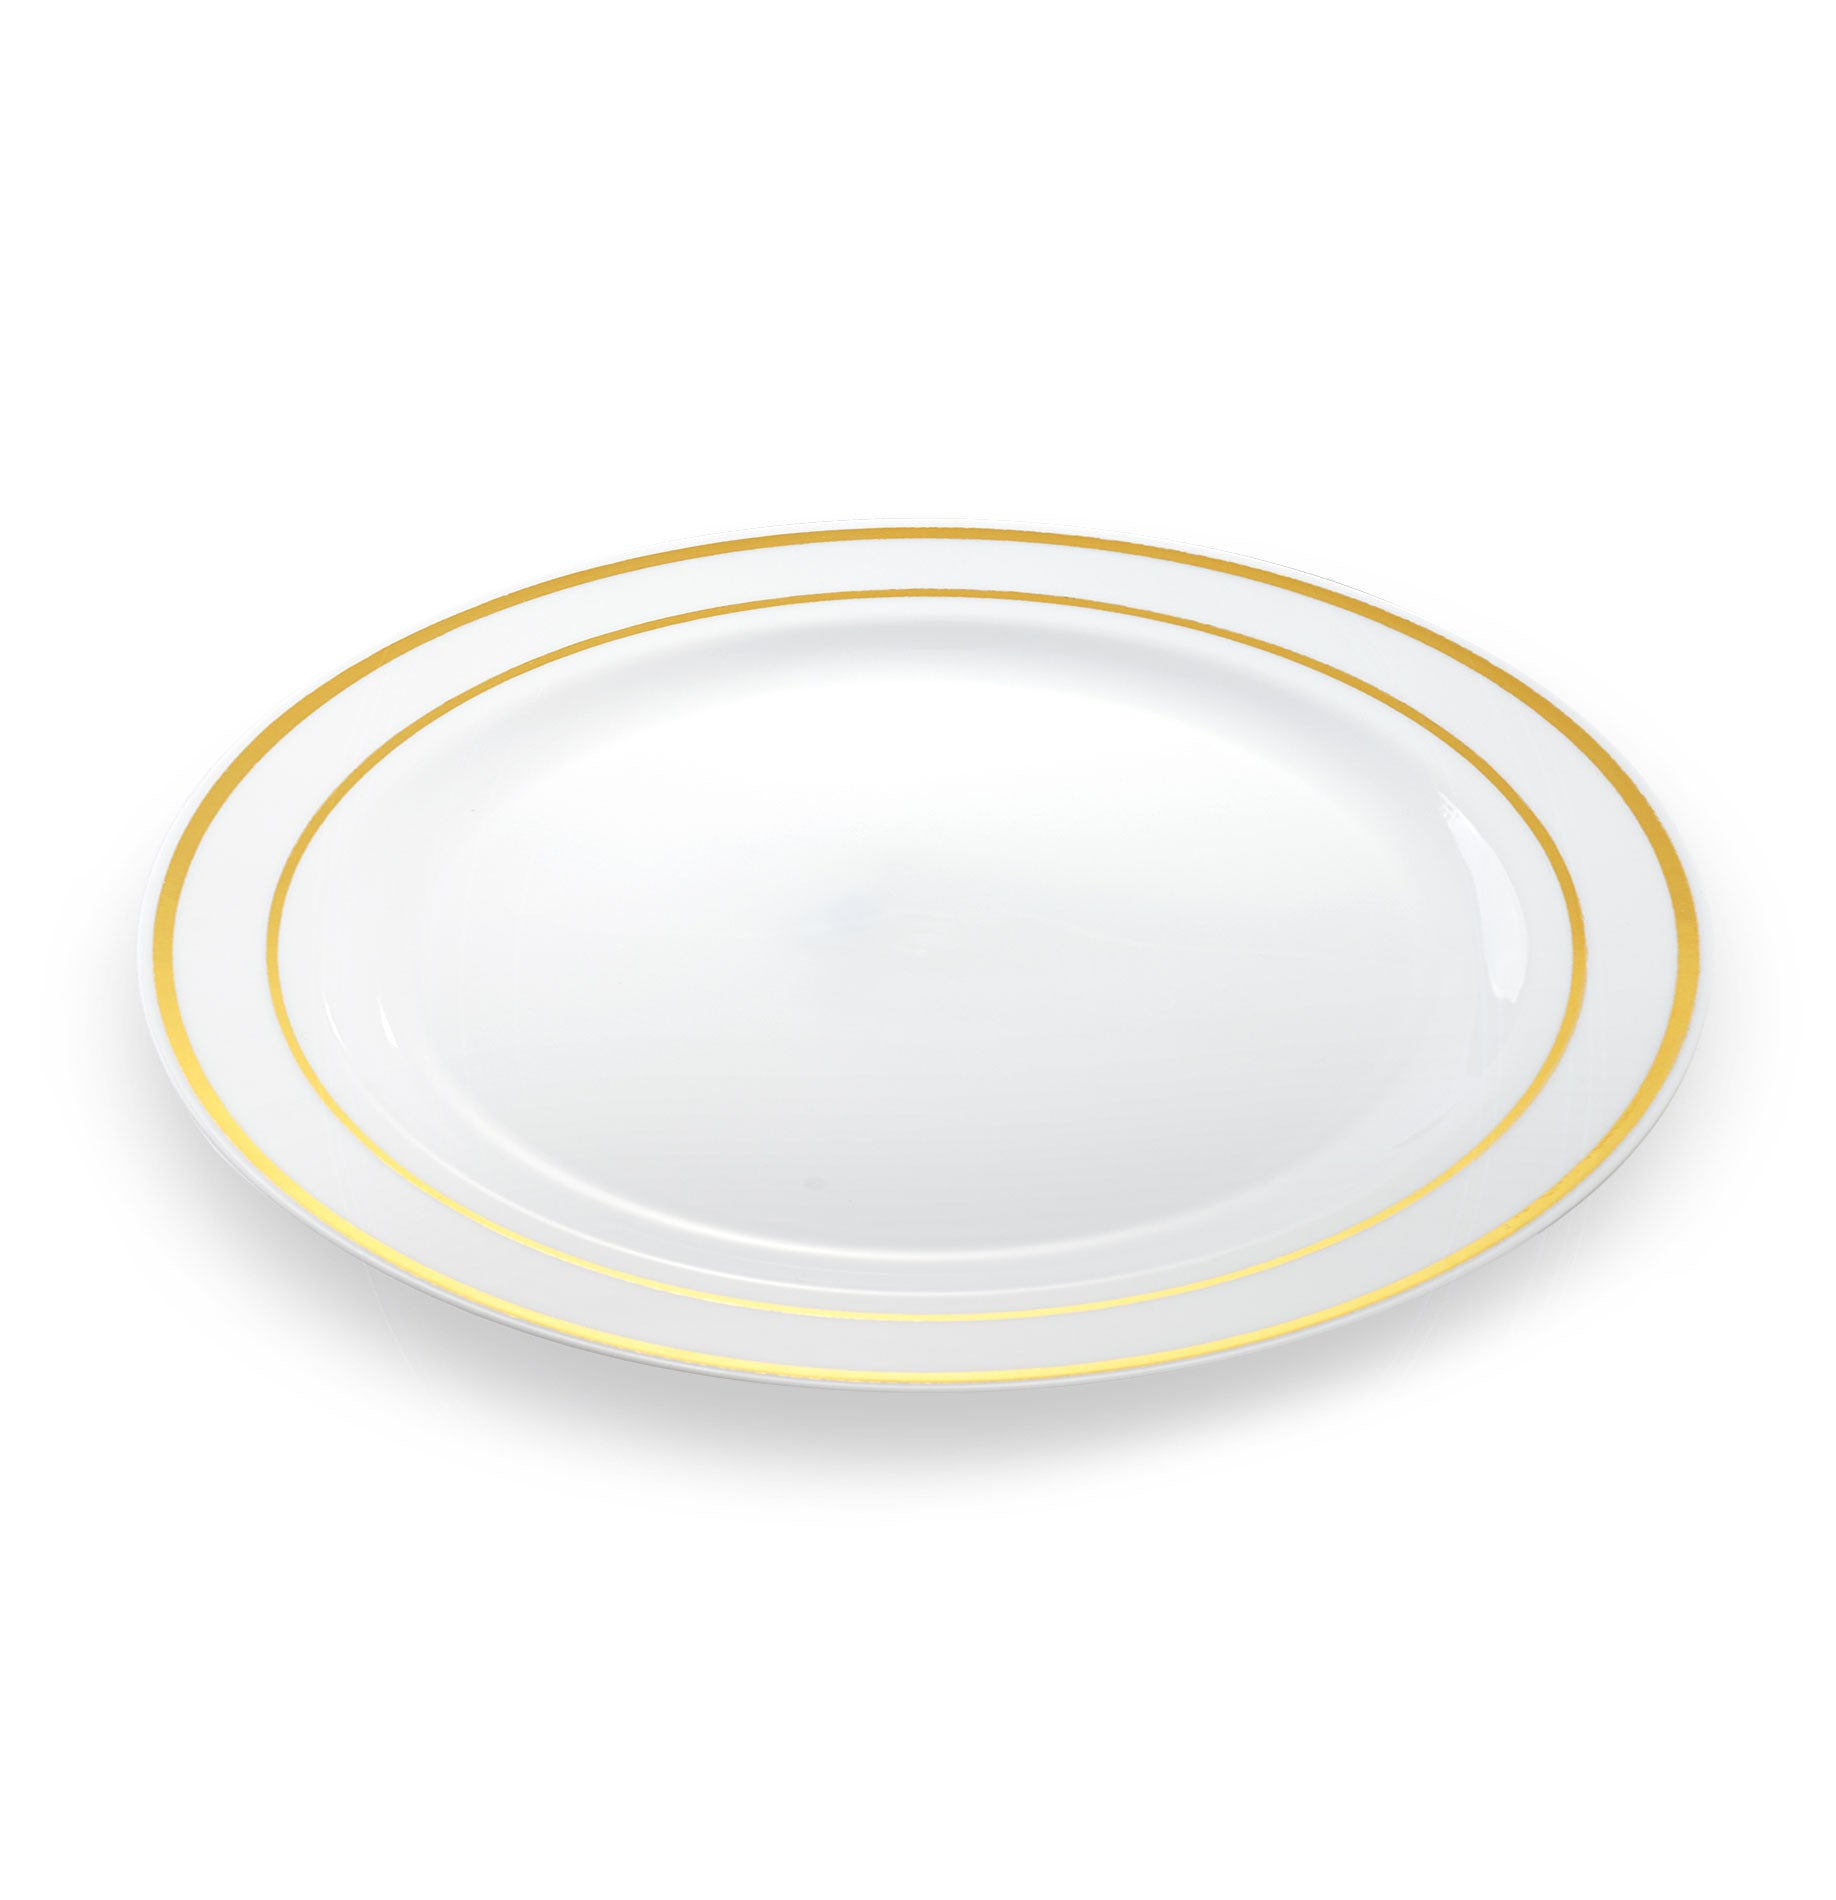 sc 1 st  Simply Disposables & 20 x Large Disposable Plates | Gold Rim 10.25